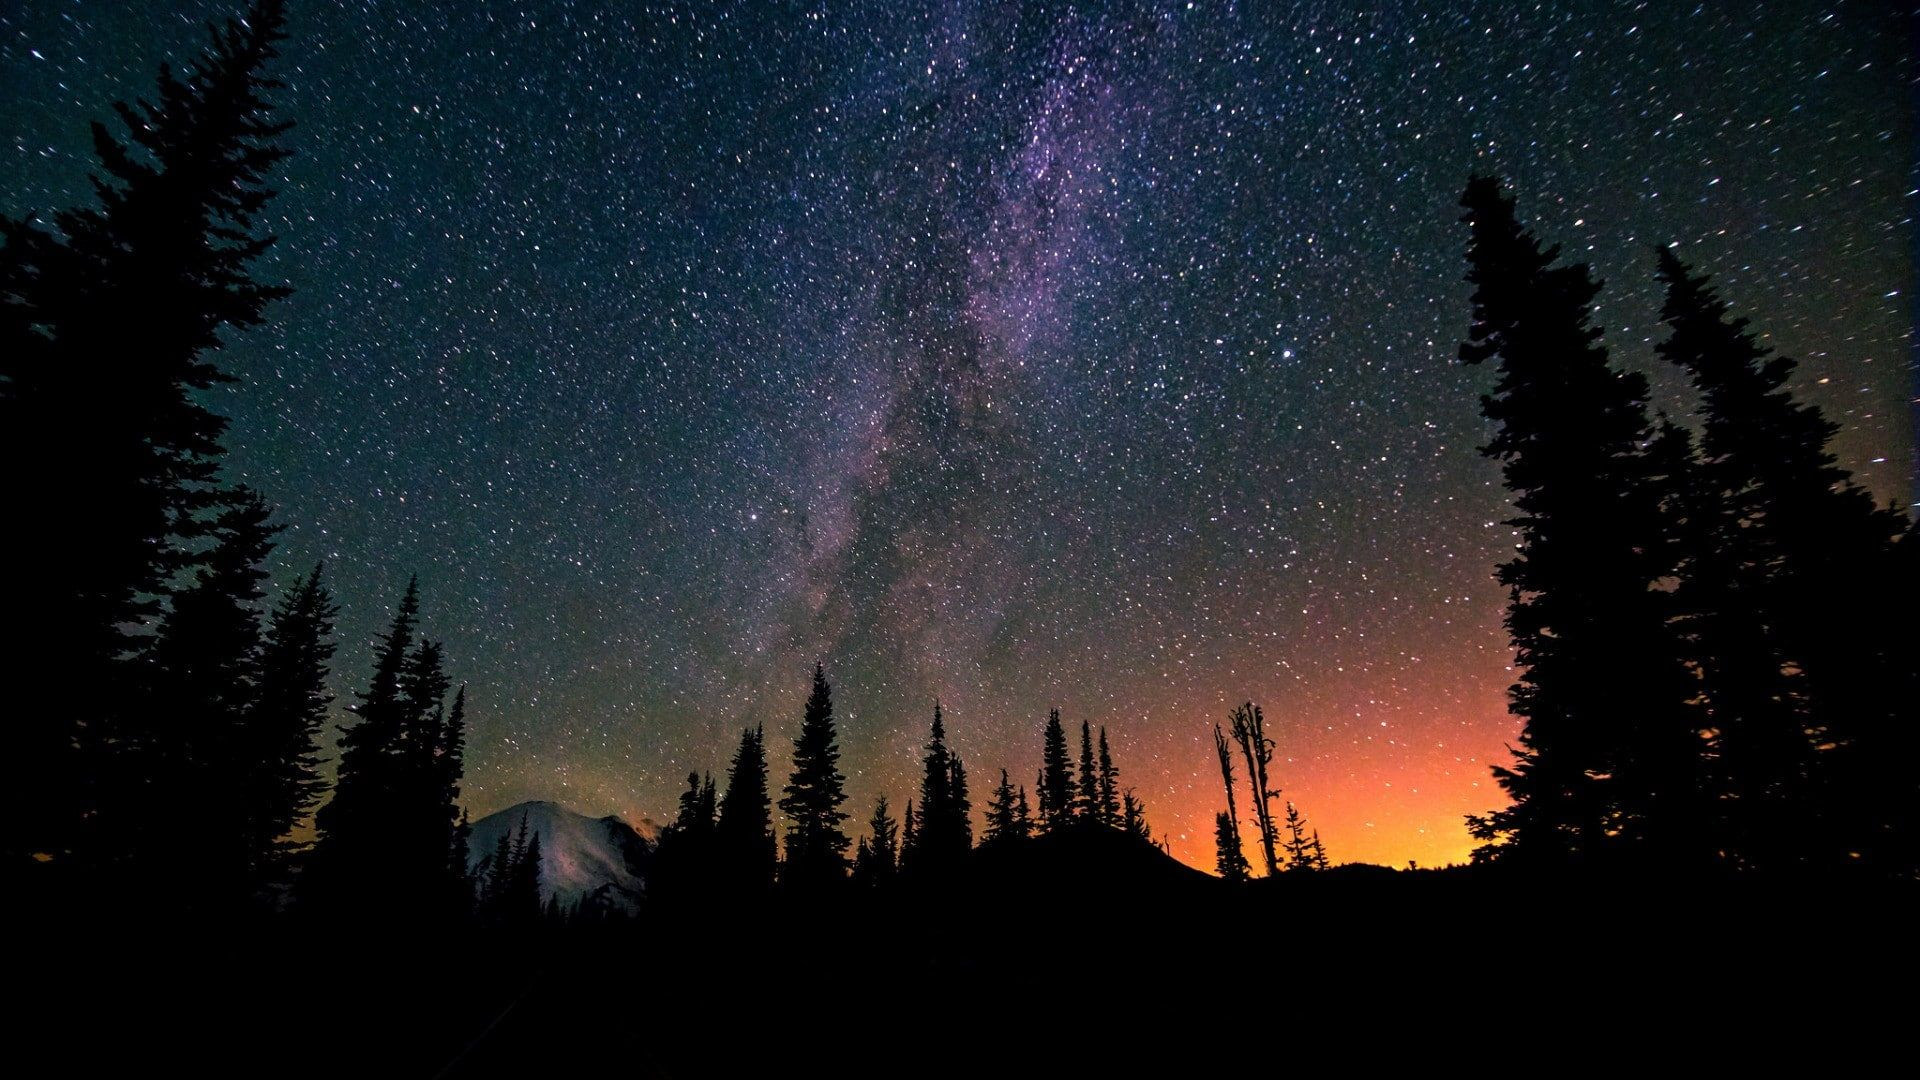 Night Stars Long Exposure Landscape Forest Milky Way Nature Trees Mountains 1080p Wallpaper Hdwallp In 2020 Milky Way Night Sky Stars Long Exposure Landscape